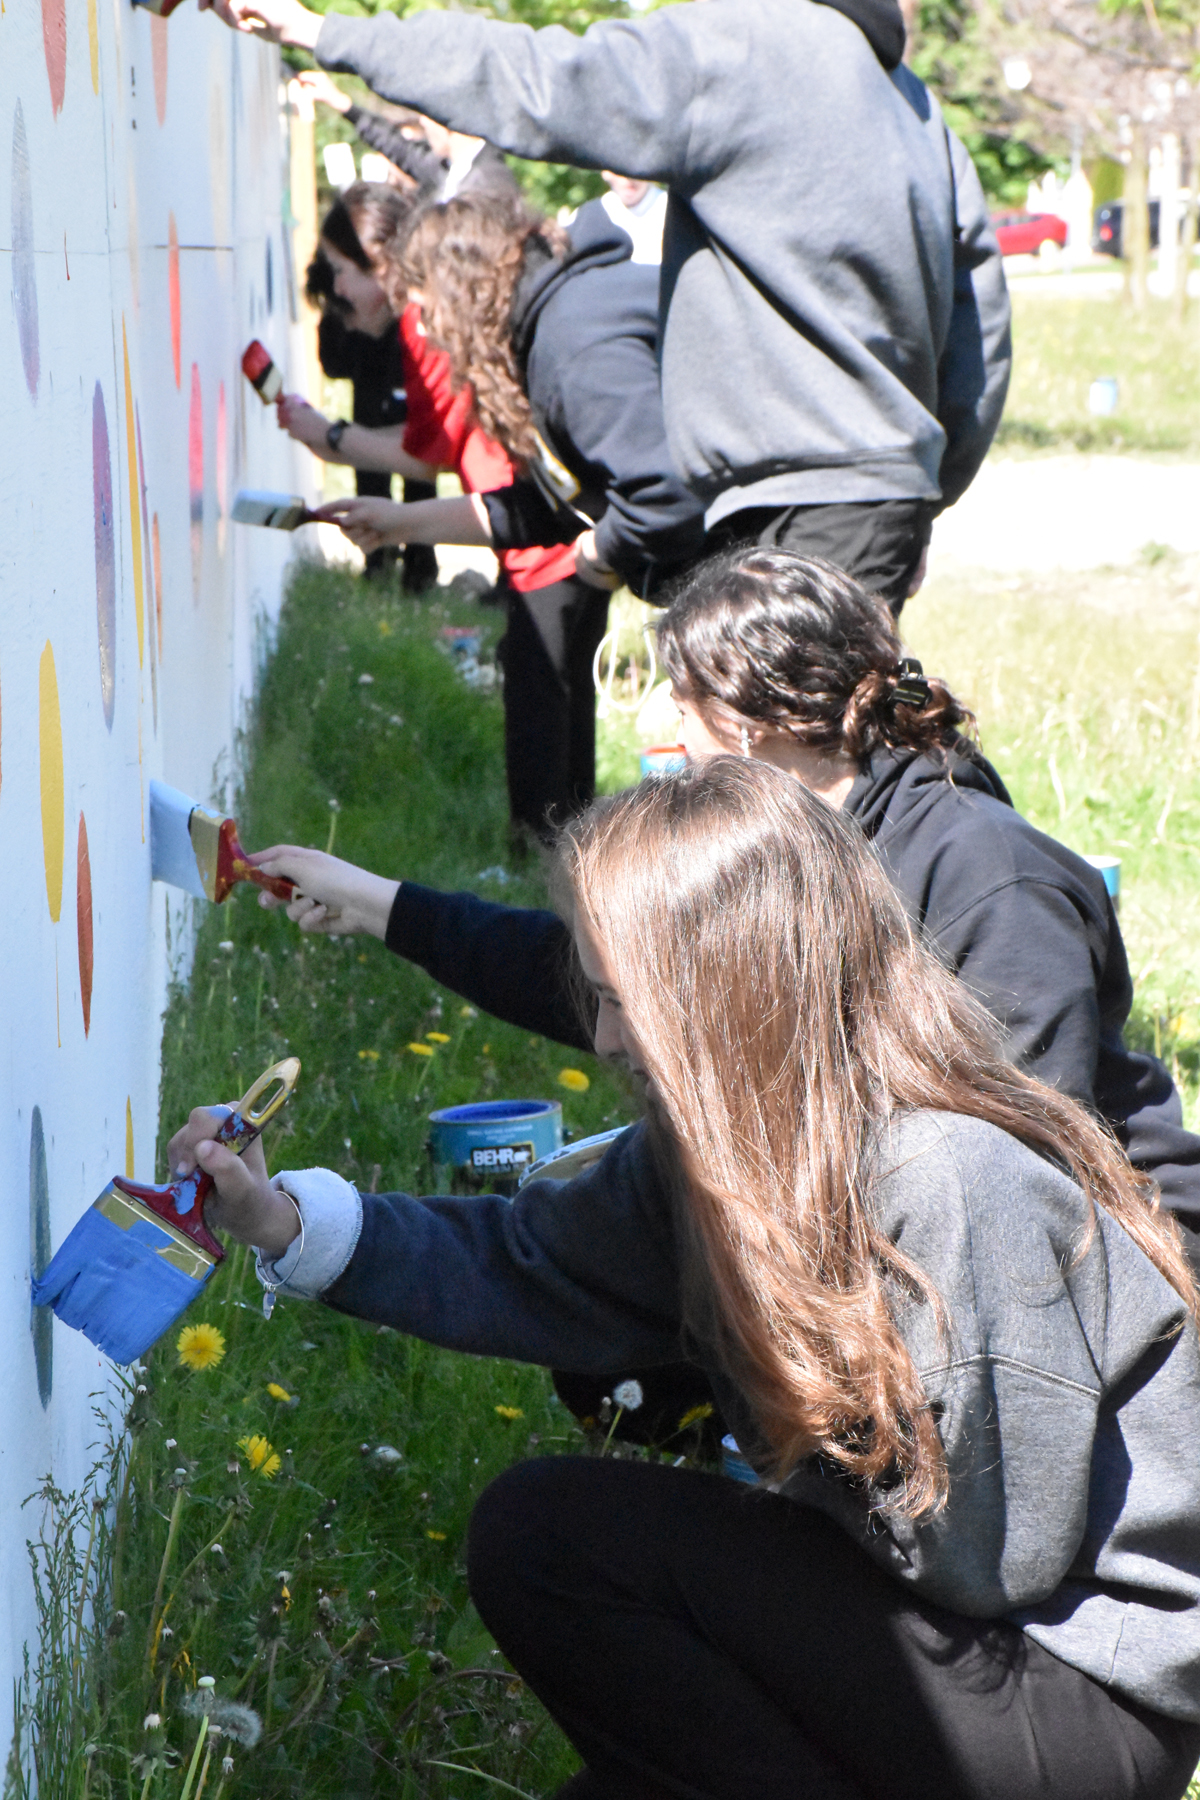 Students painting VVSL hoarding fence